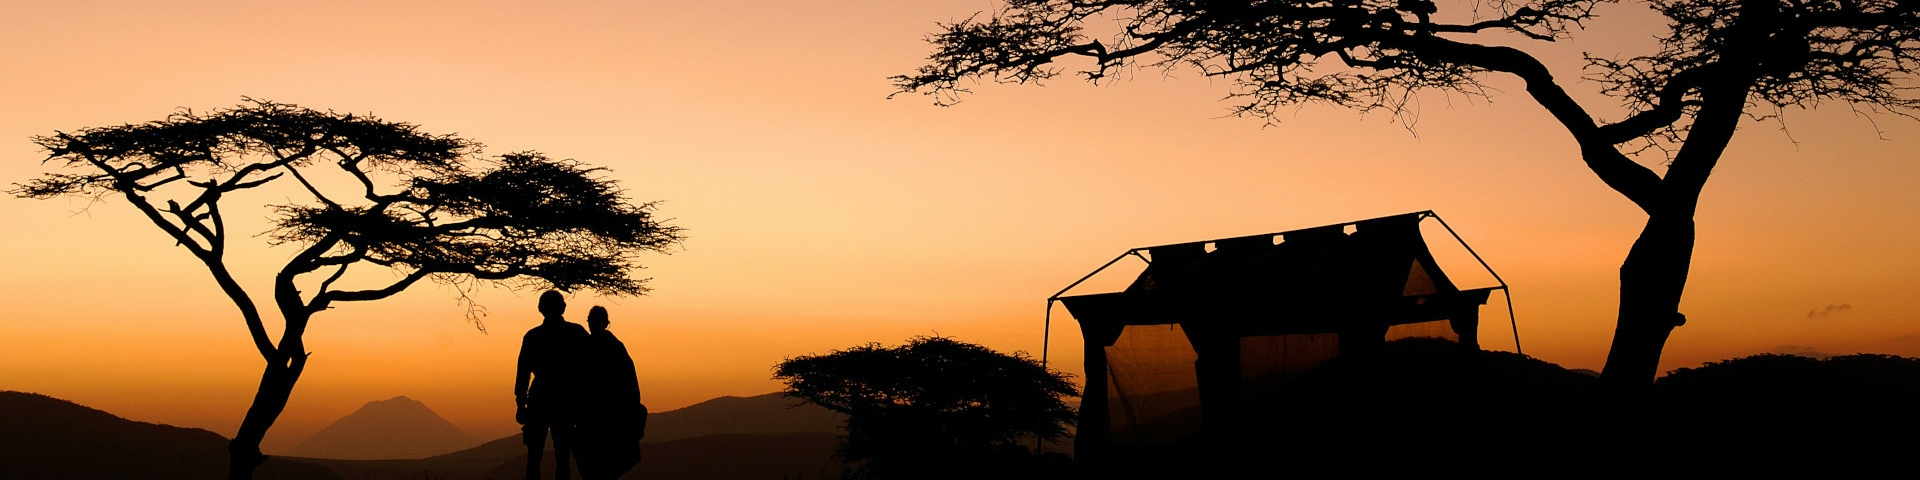 Tours and Safaris to Tarangire National Park Tanzania Fly Camping